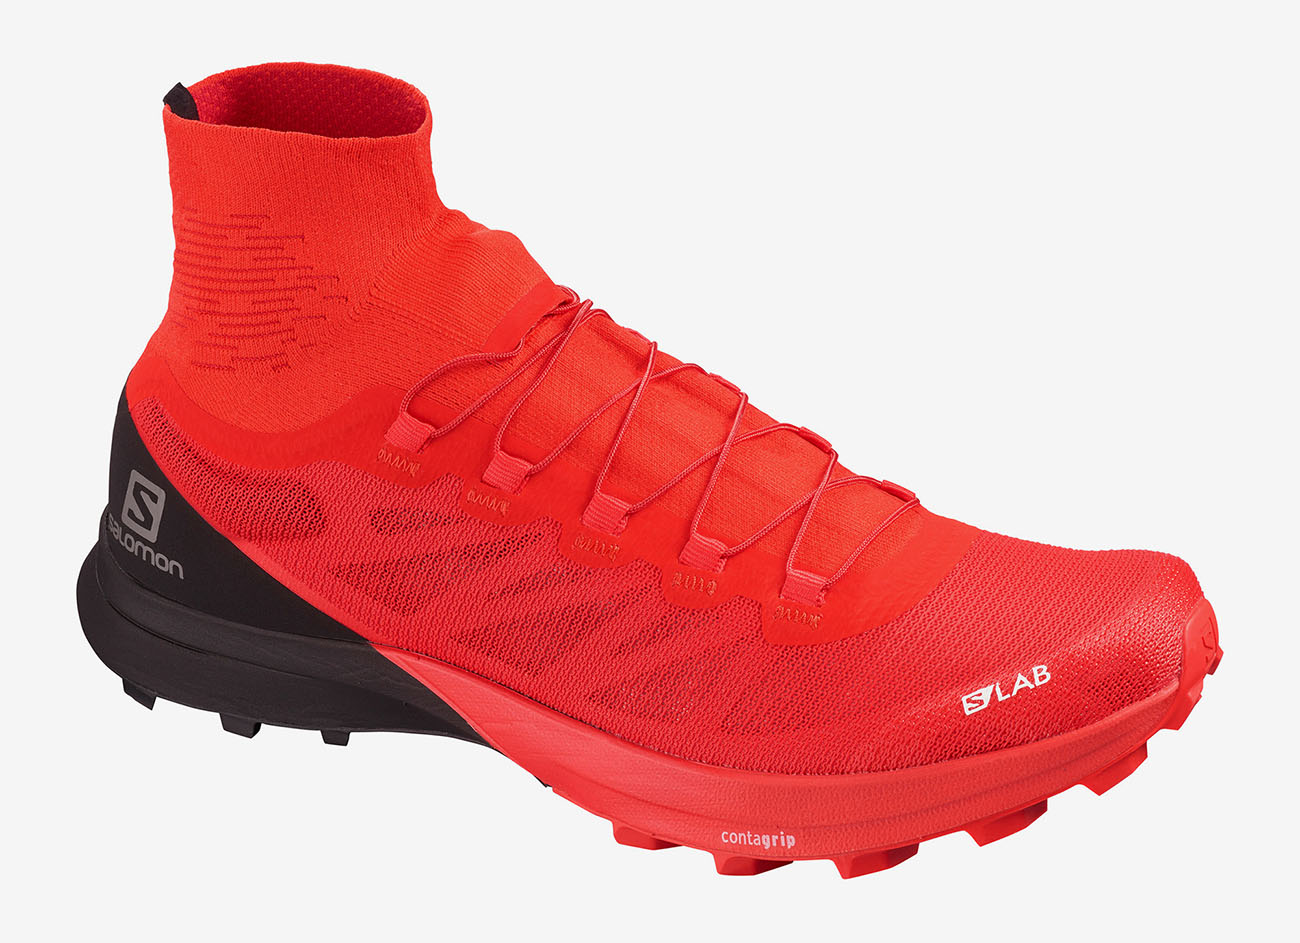 Salomon S LAB Sense 8 SG